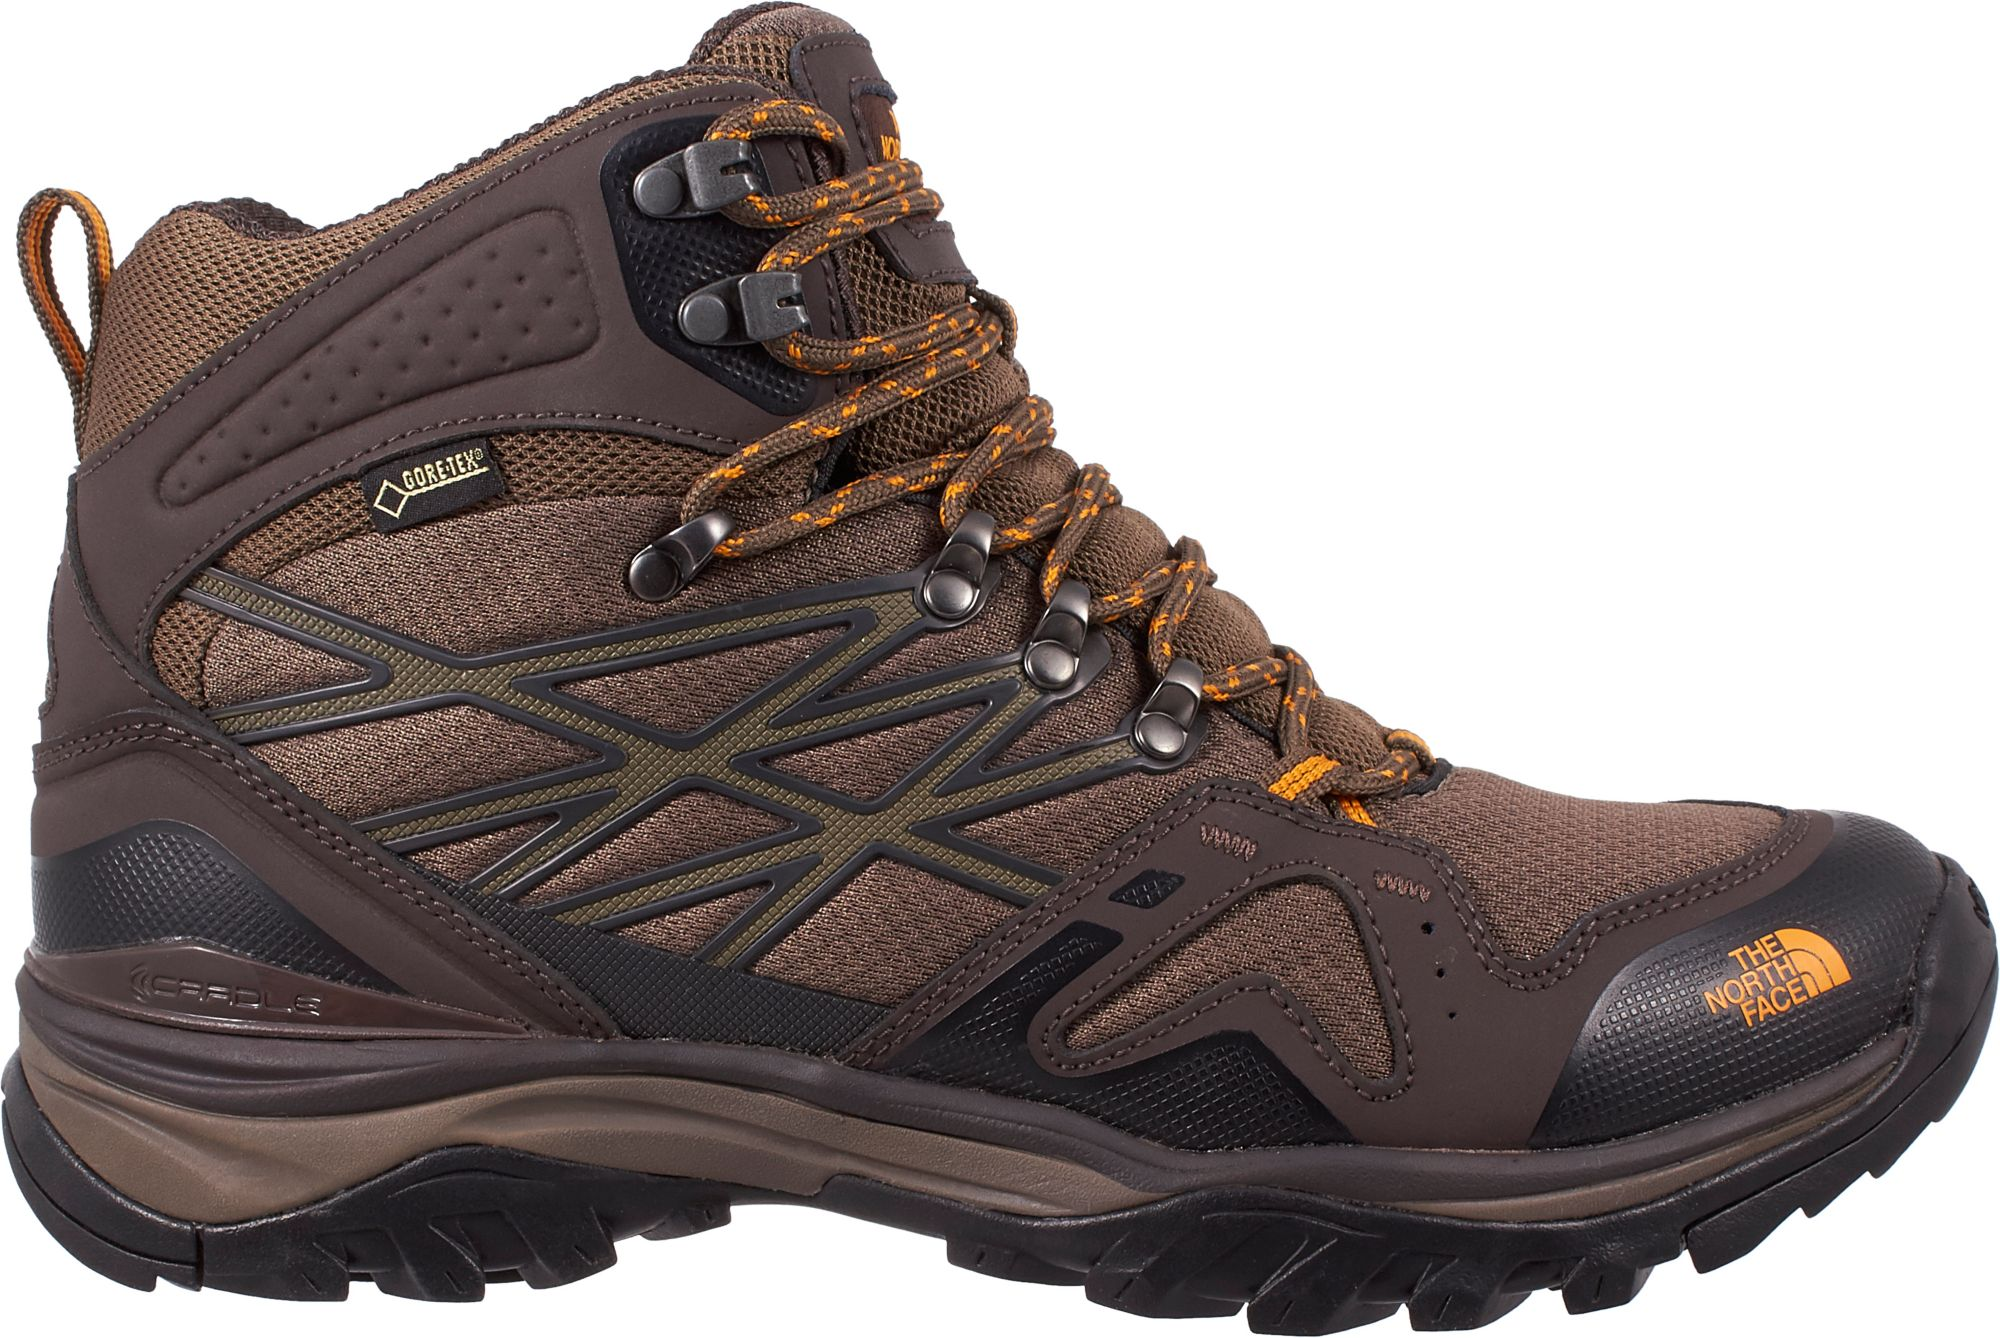 The North Face Men's Hedgehog FastPack Mid GORE-TEX Hiking Boots ...